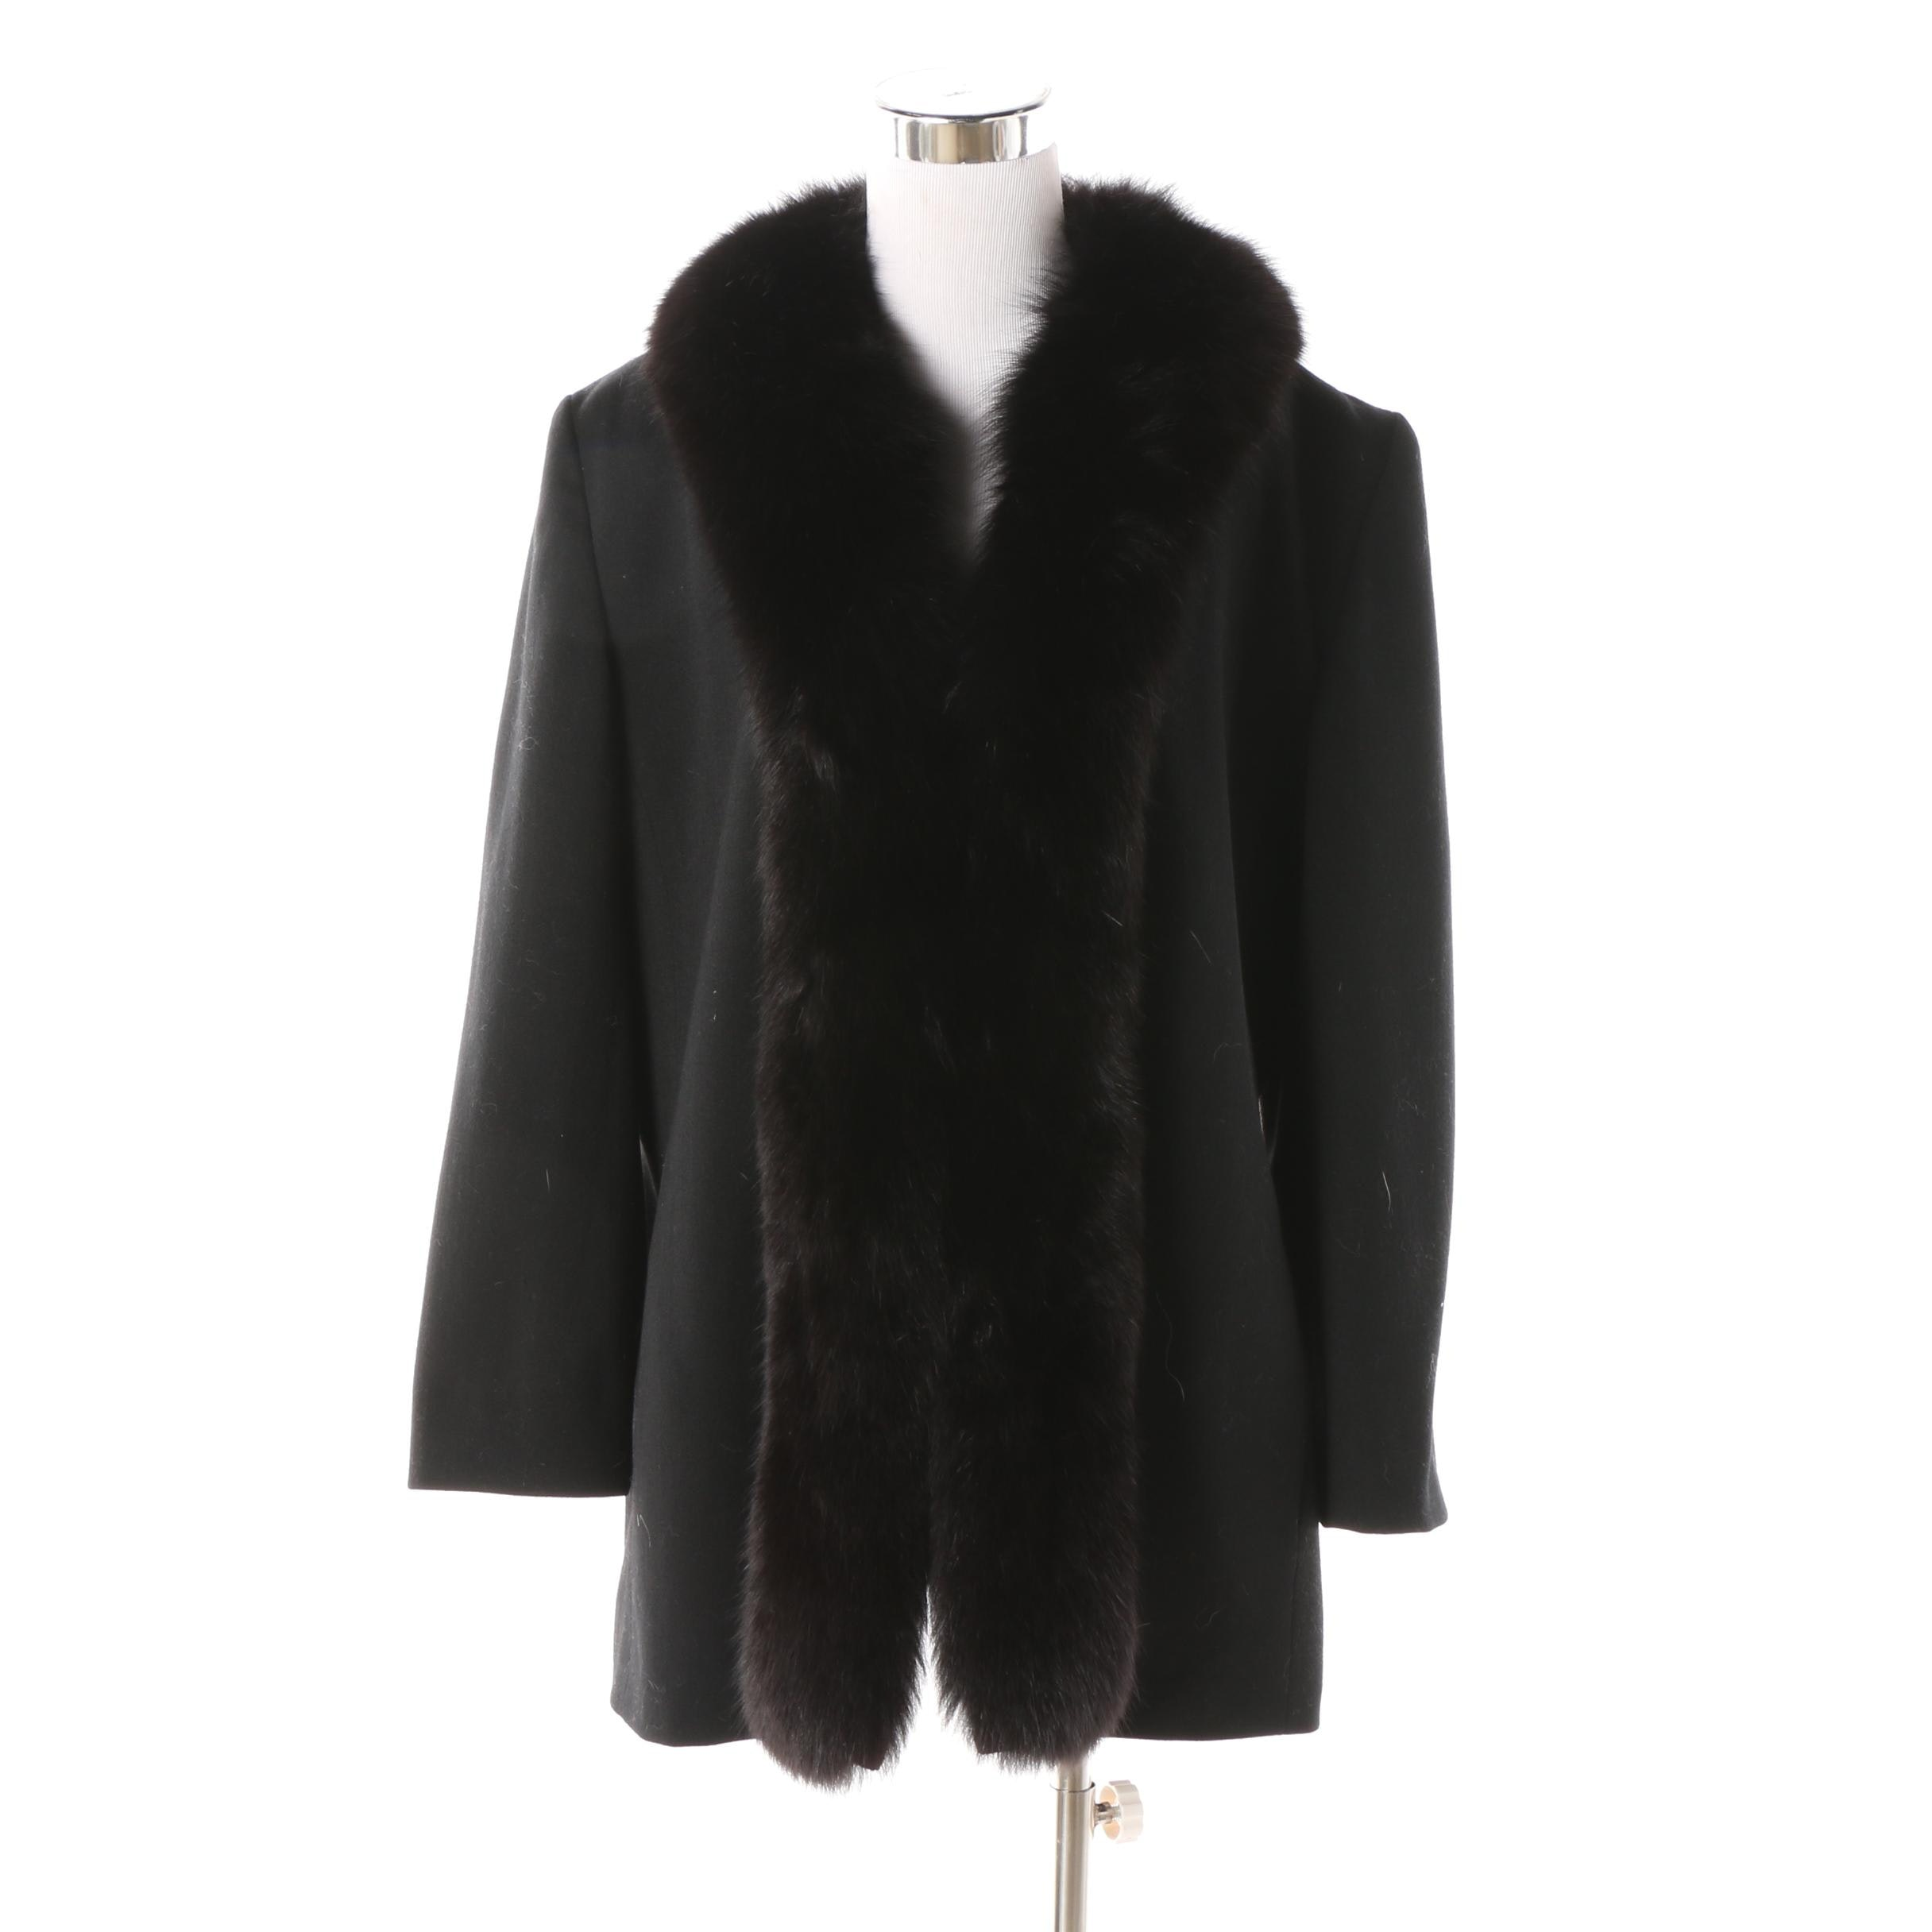 Women's Vintage Denise for Windemere Black Wool Jacket with Dyed Fox Fur Collar